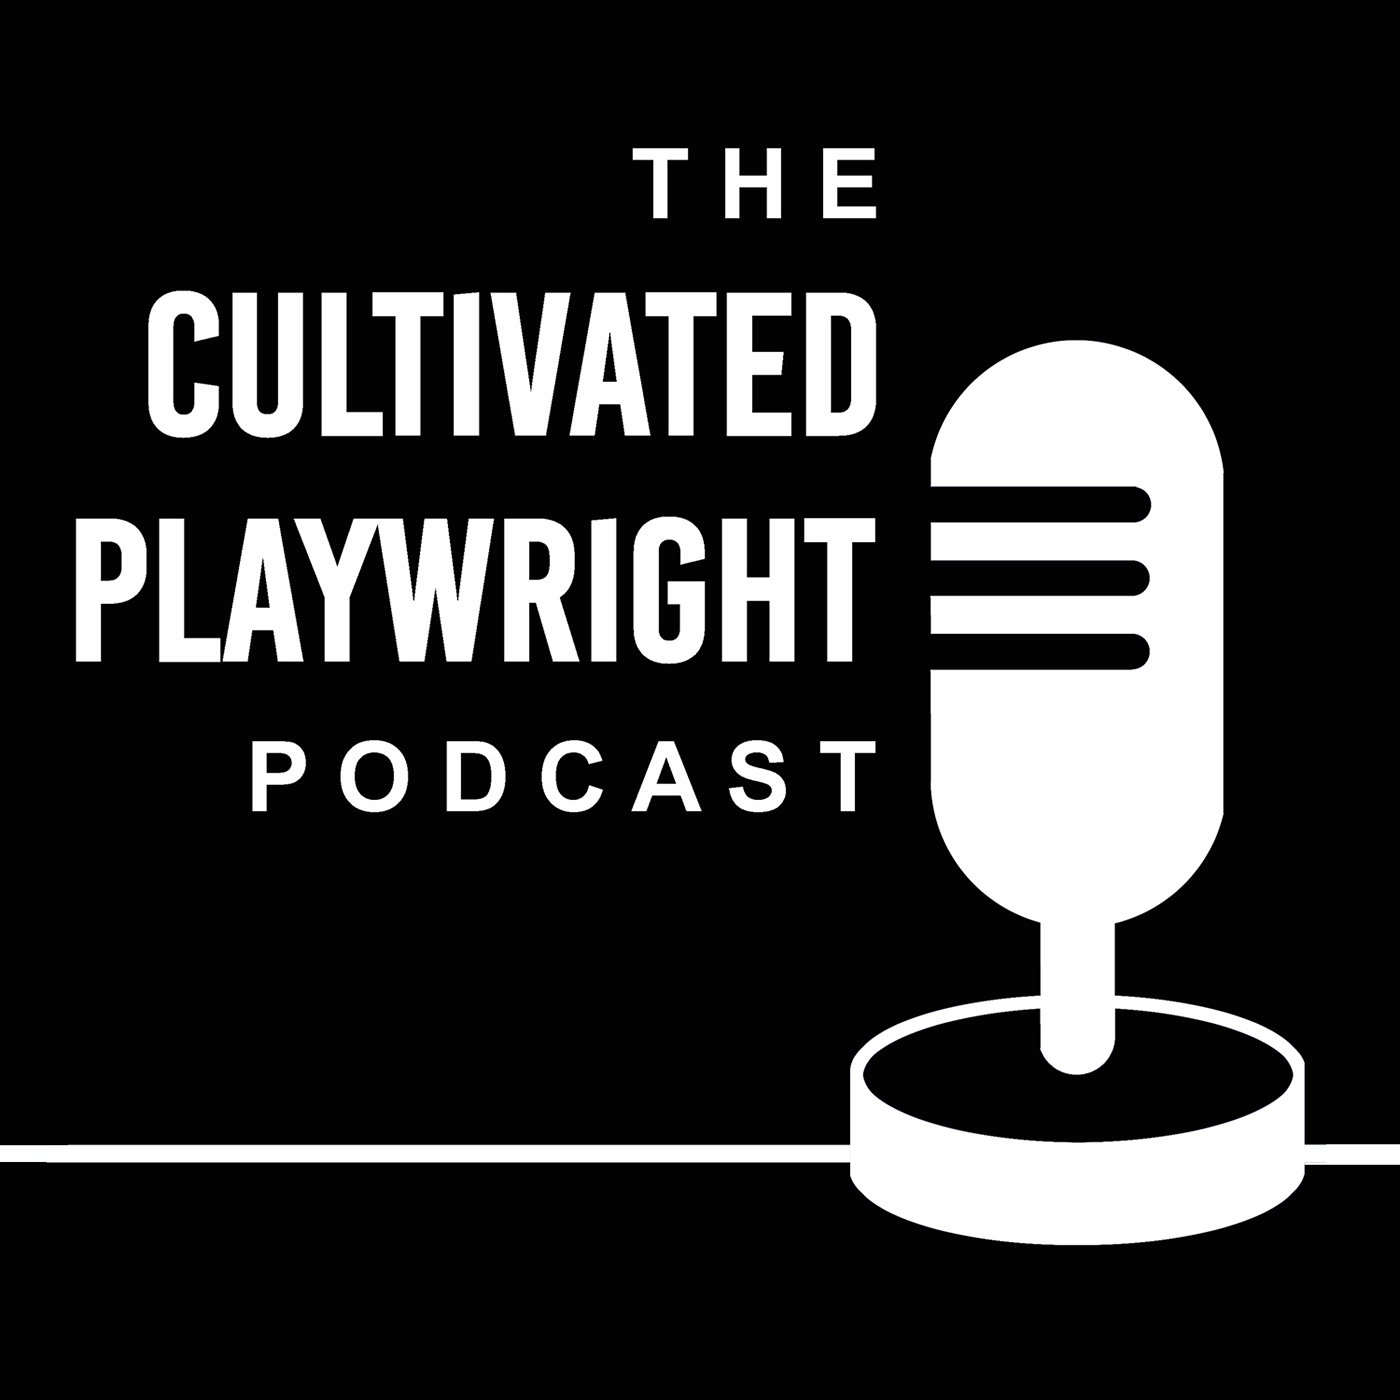 Cultivated Playwright Podcast